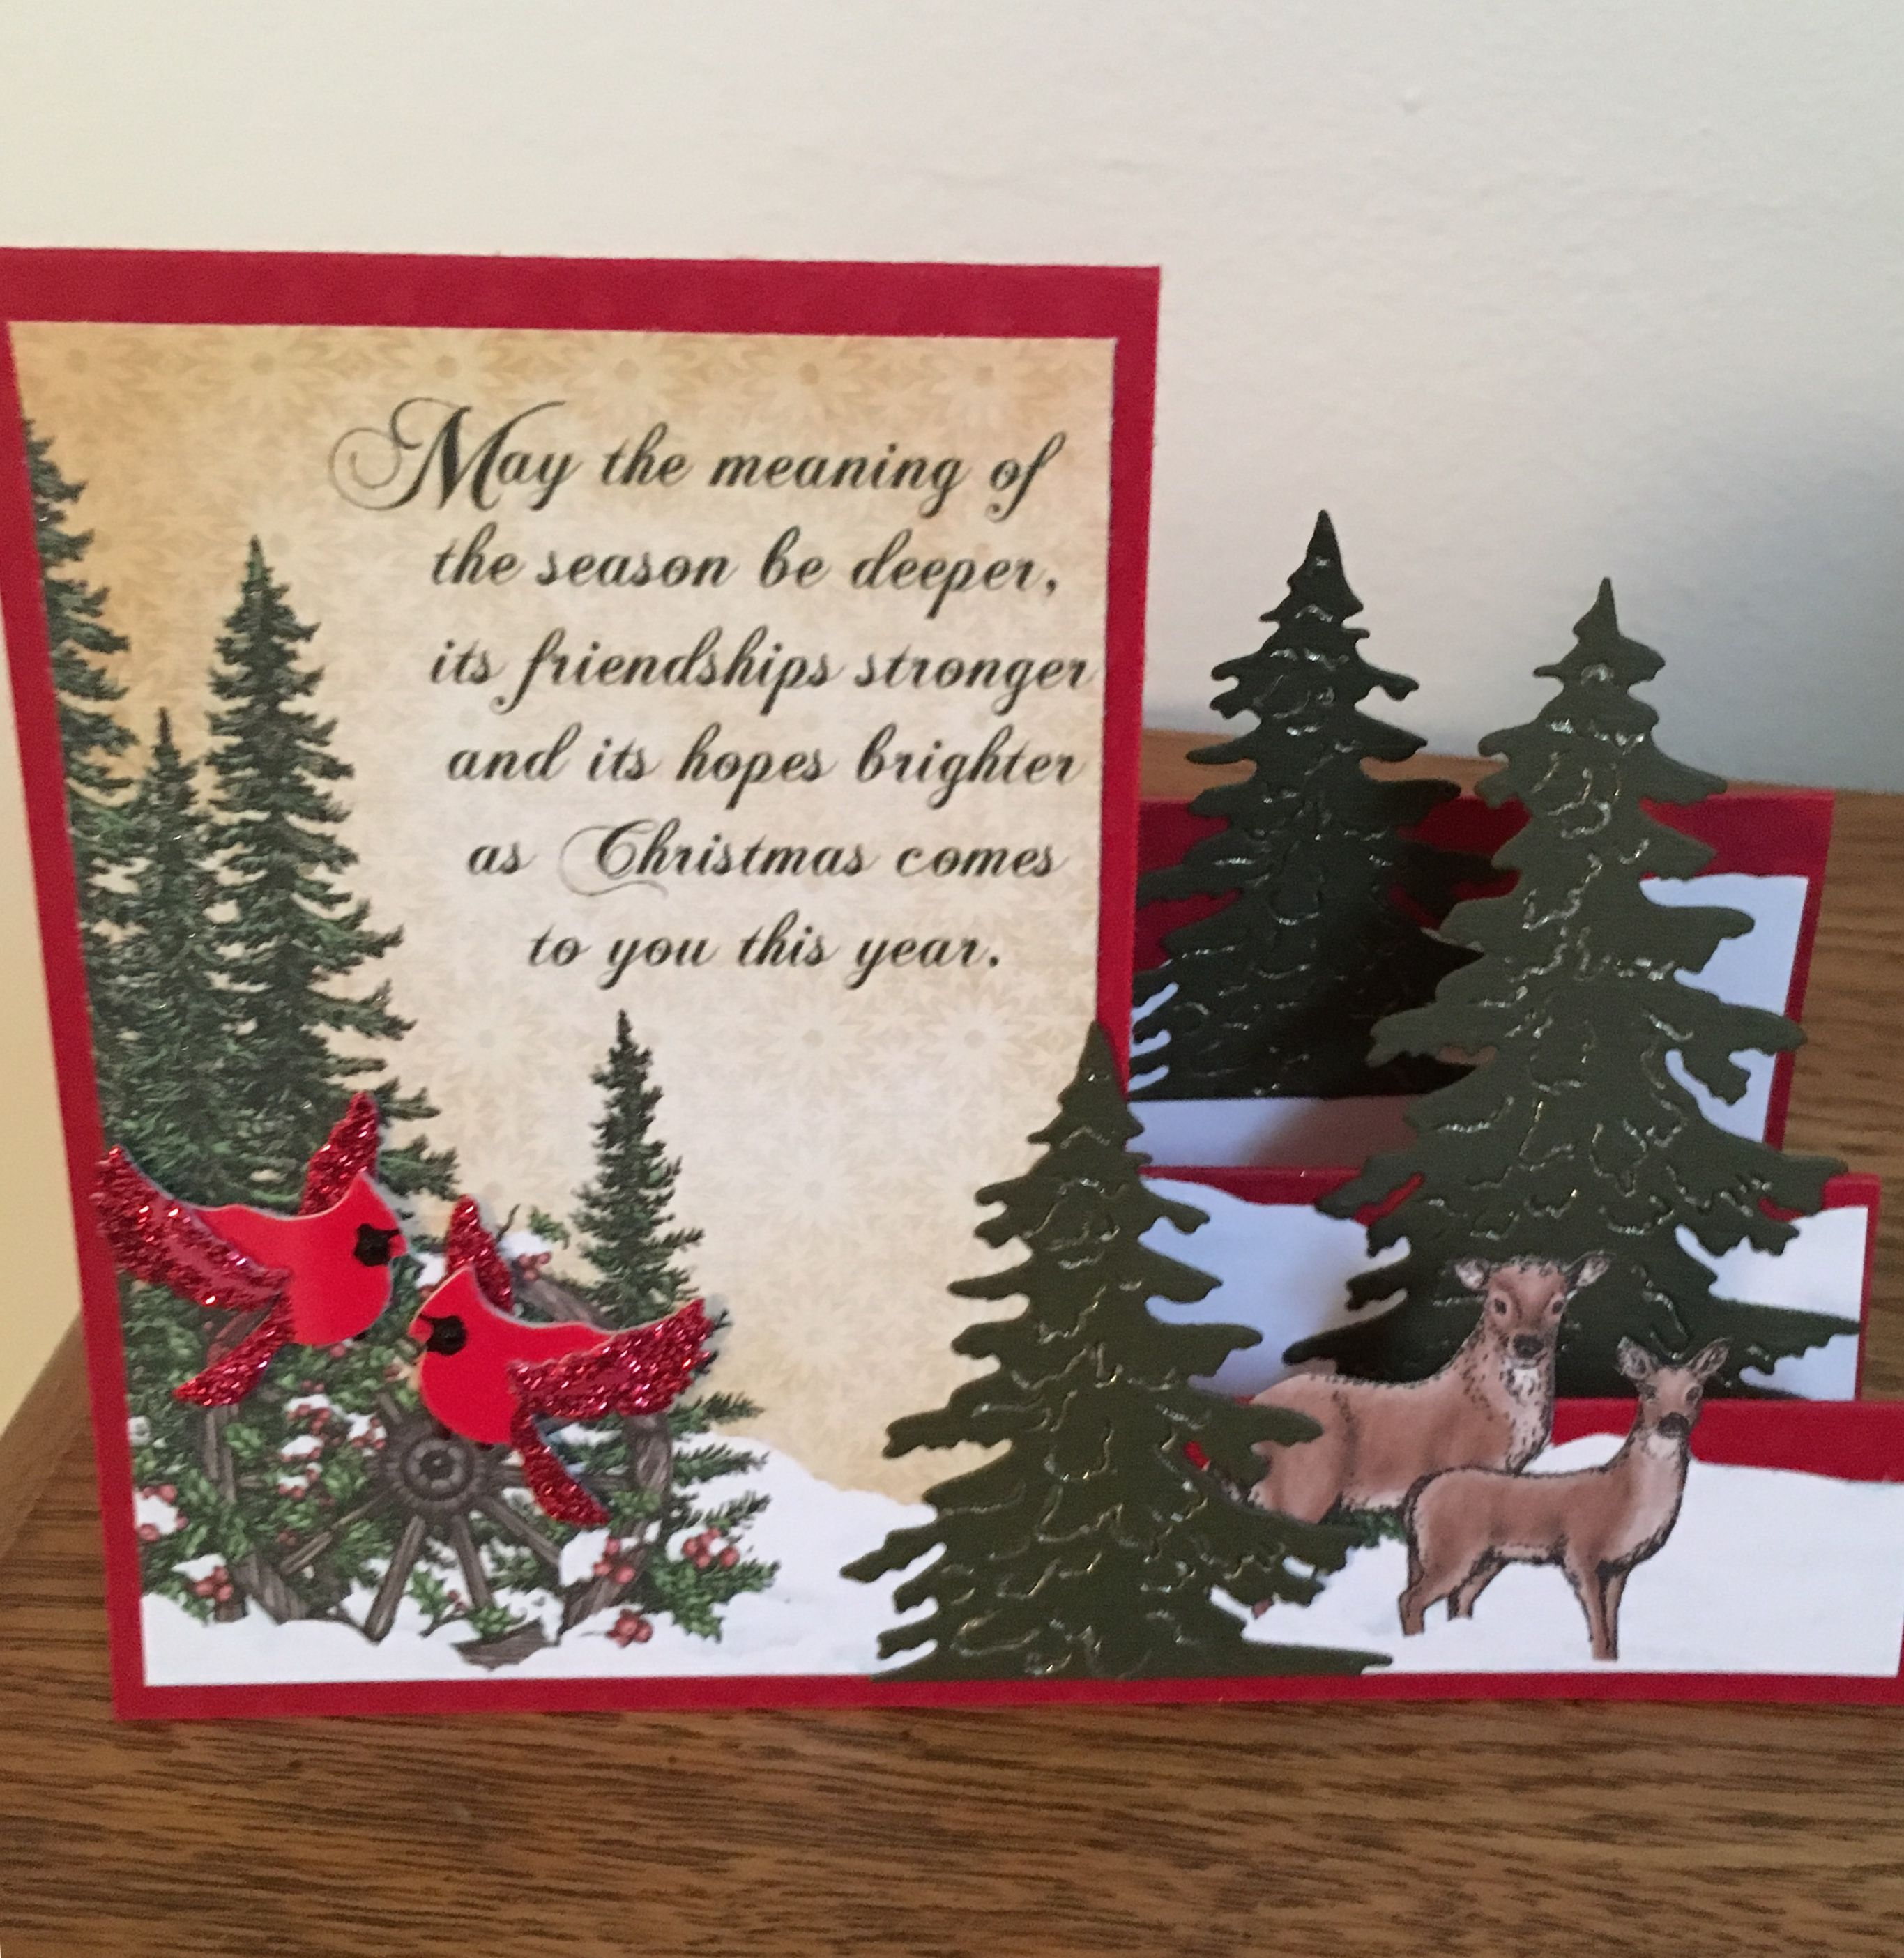 Pin by Cheryl Menzel on Christmas cards Pinterest